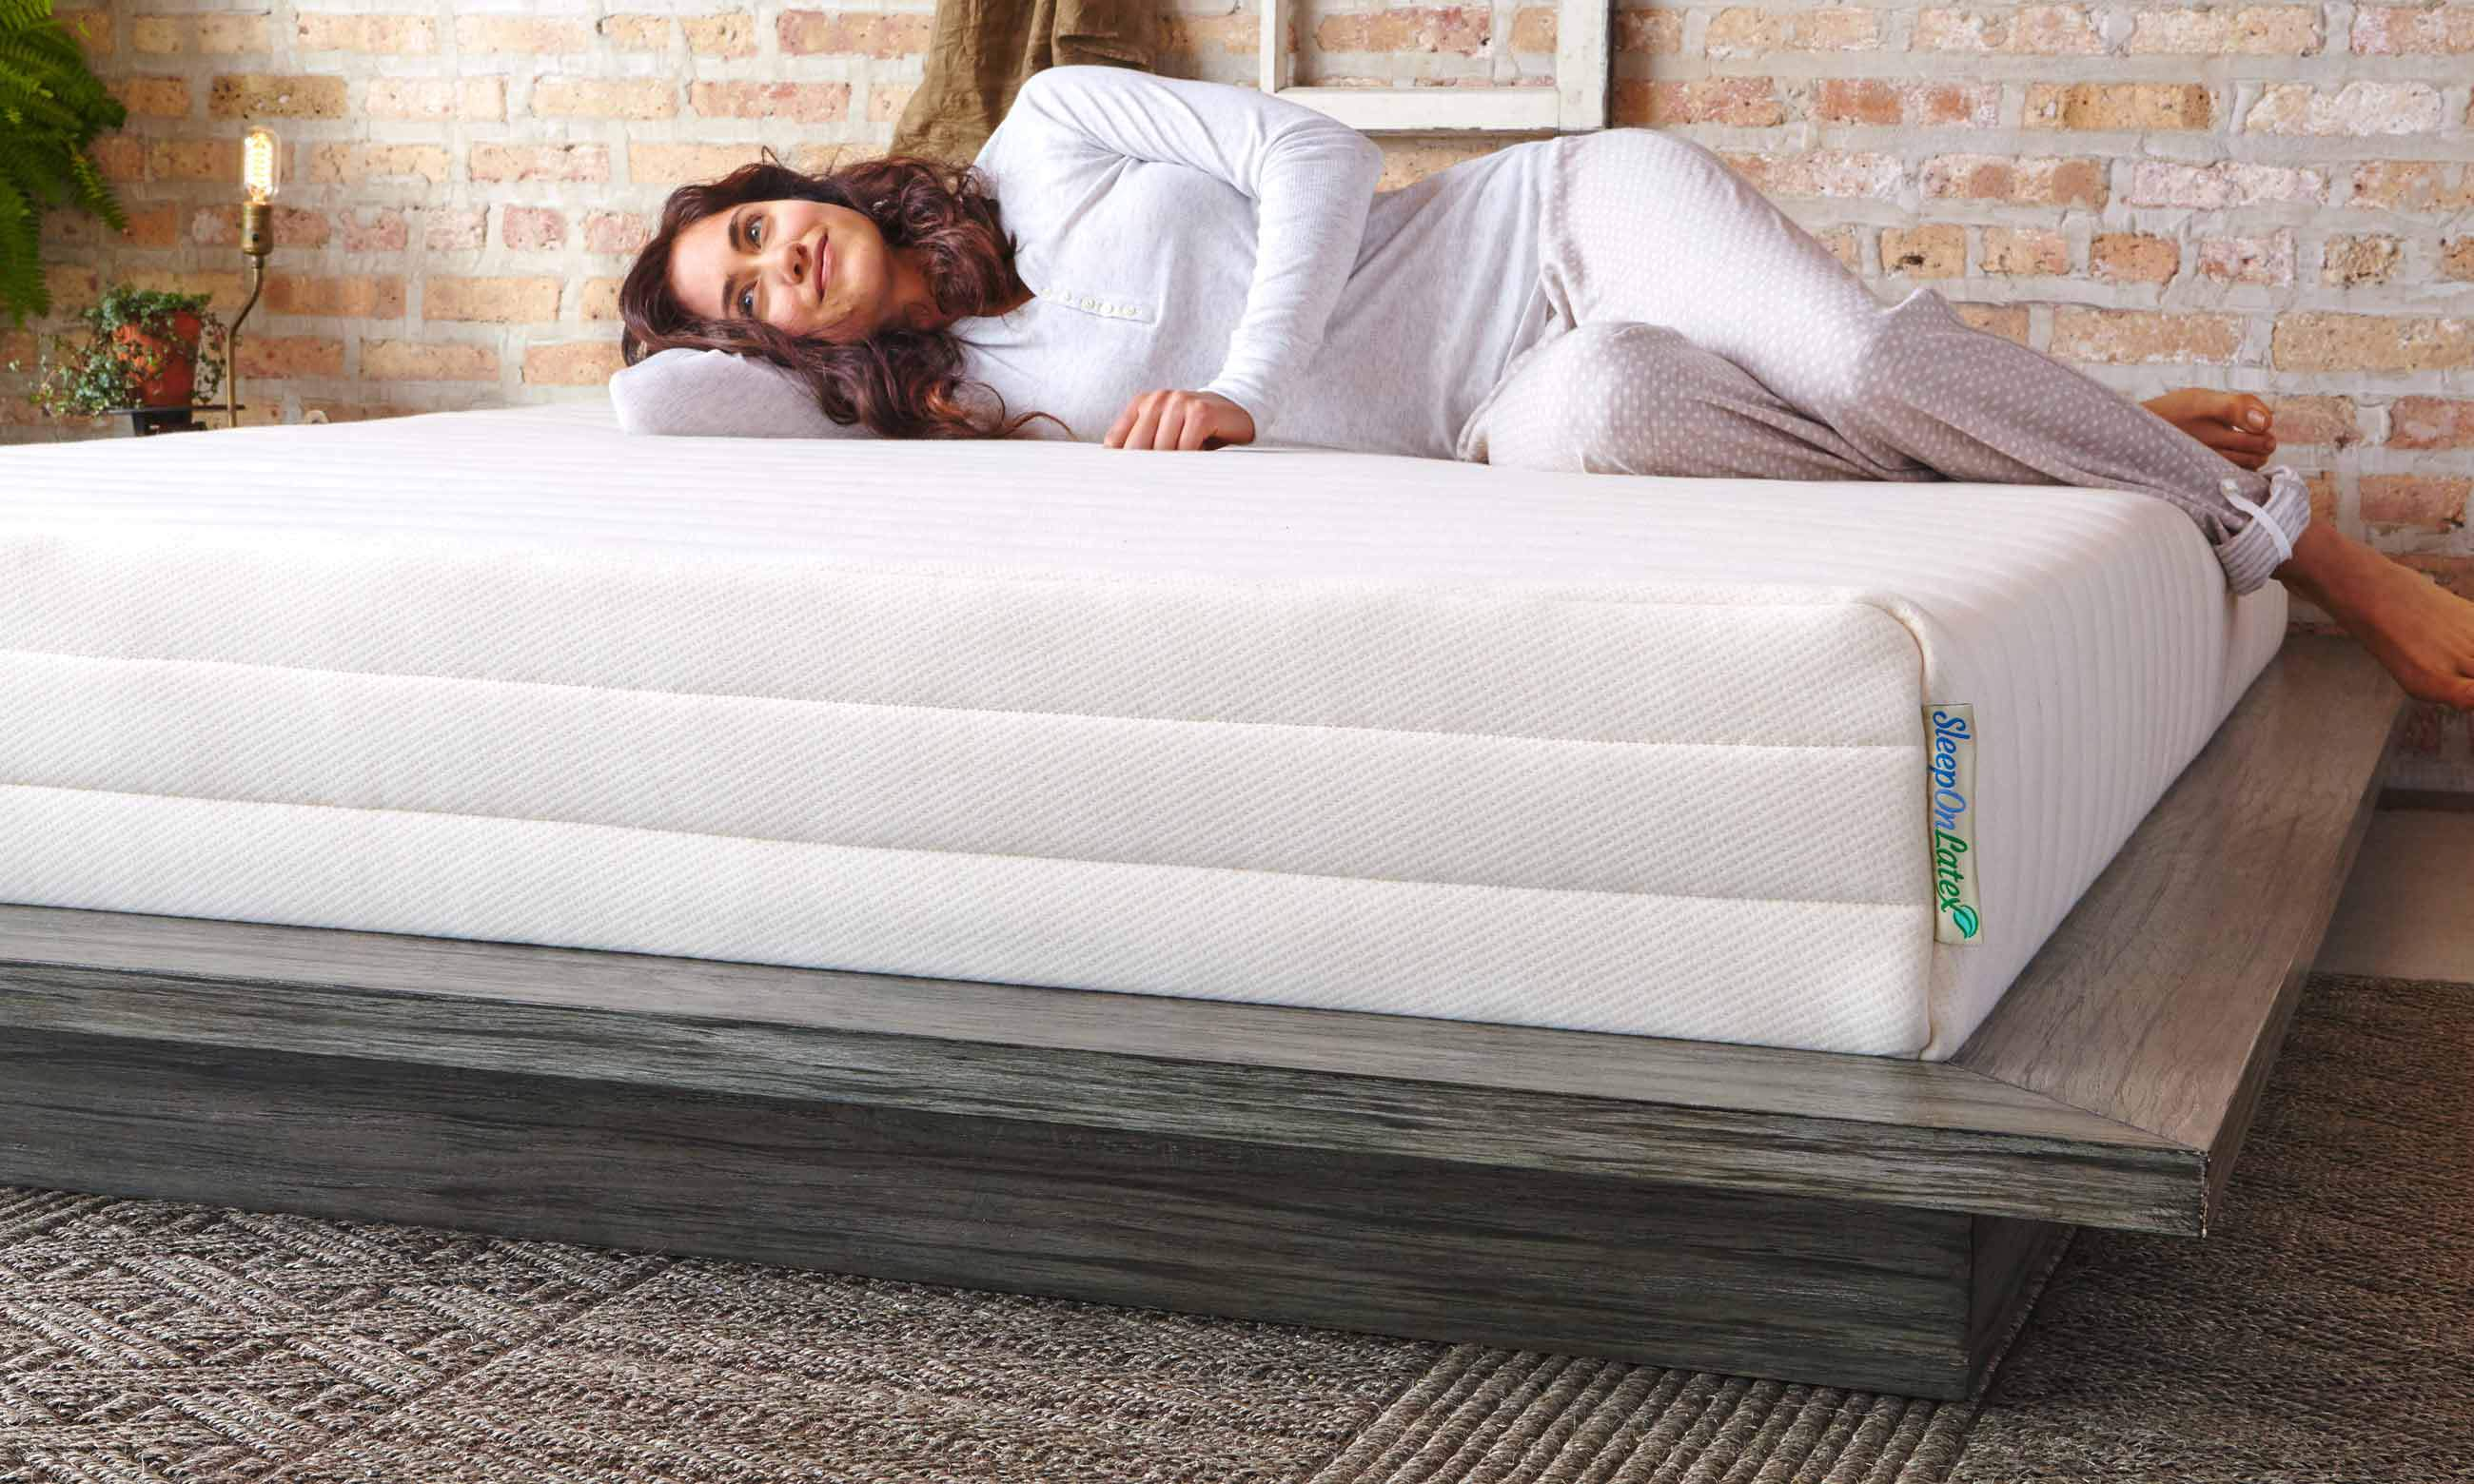 Pure Green Latex Mattress Review Mattress Advisor